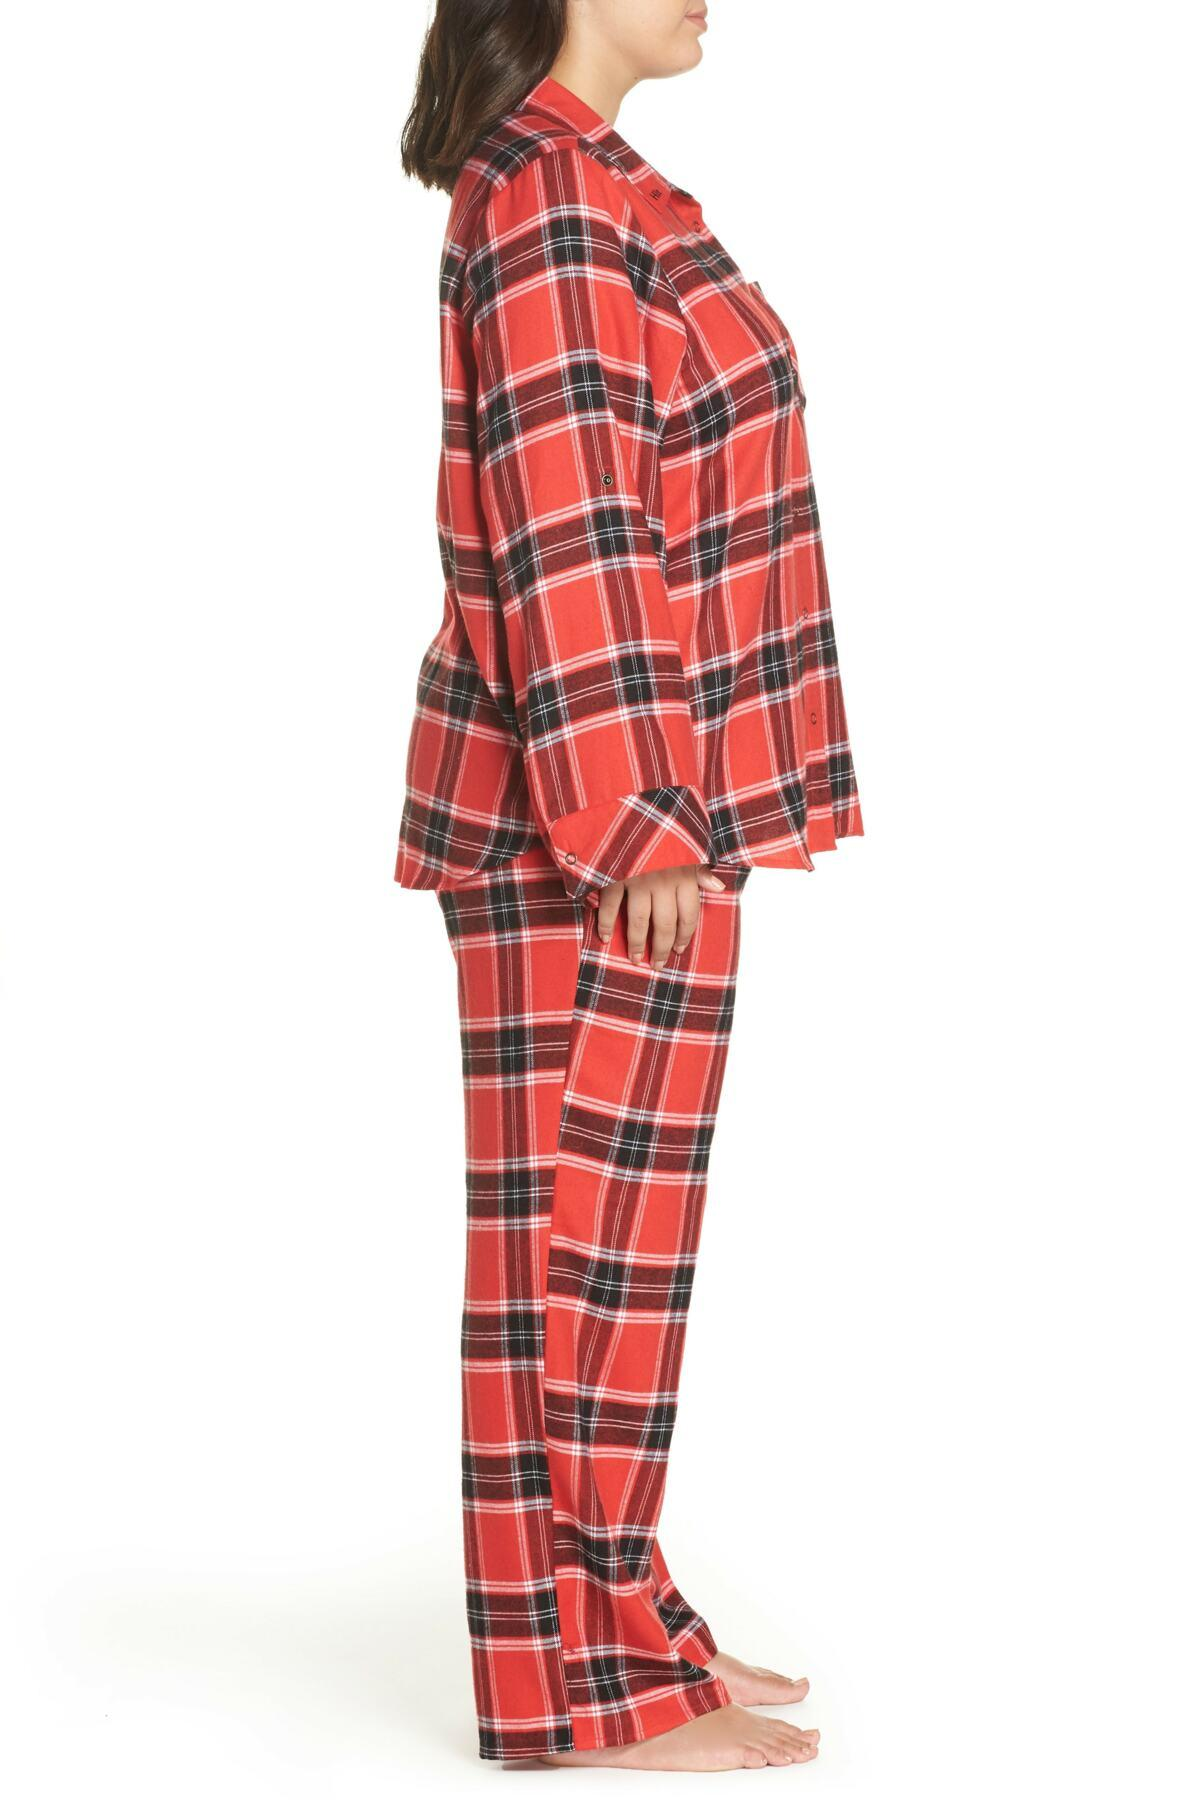 56a770442eff3 Lyst - Make + Model Flannel Pajamas (plus Size) in Red - Save 69%